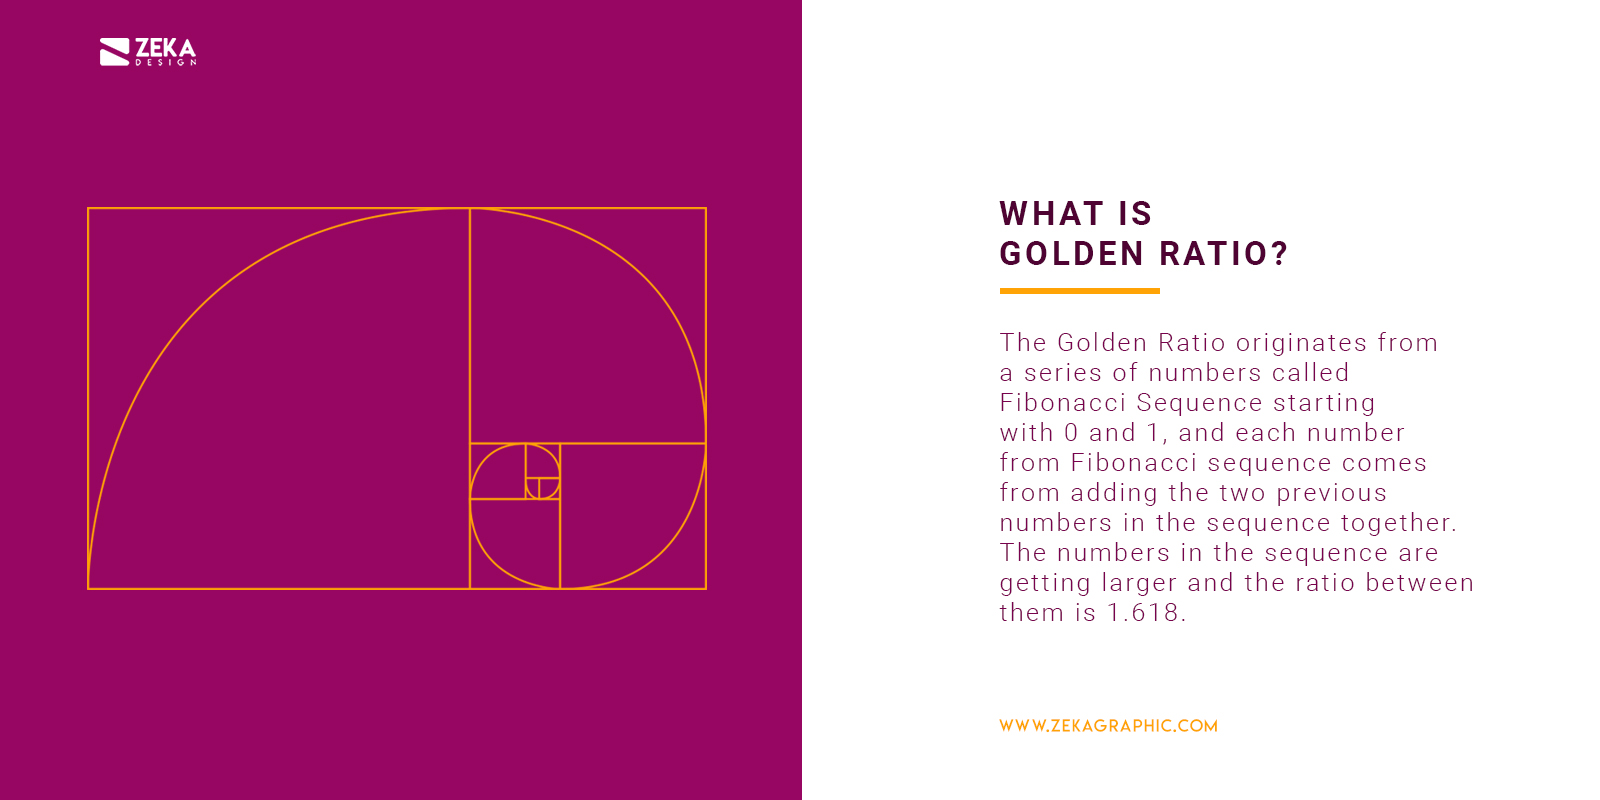 What is golden ratio meaning in Graphic Design and Logo Design